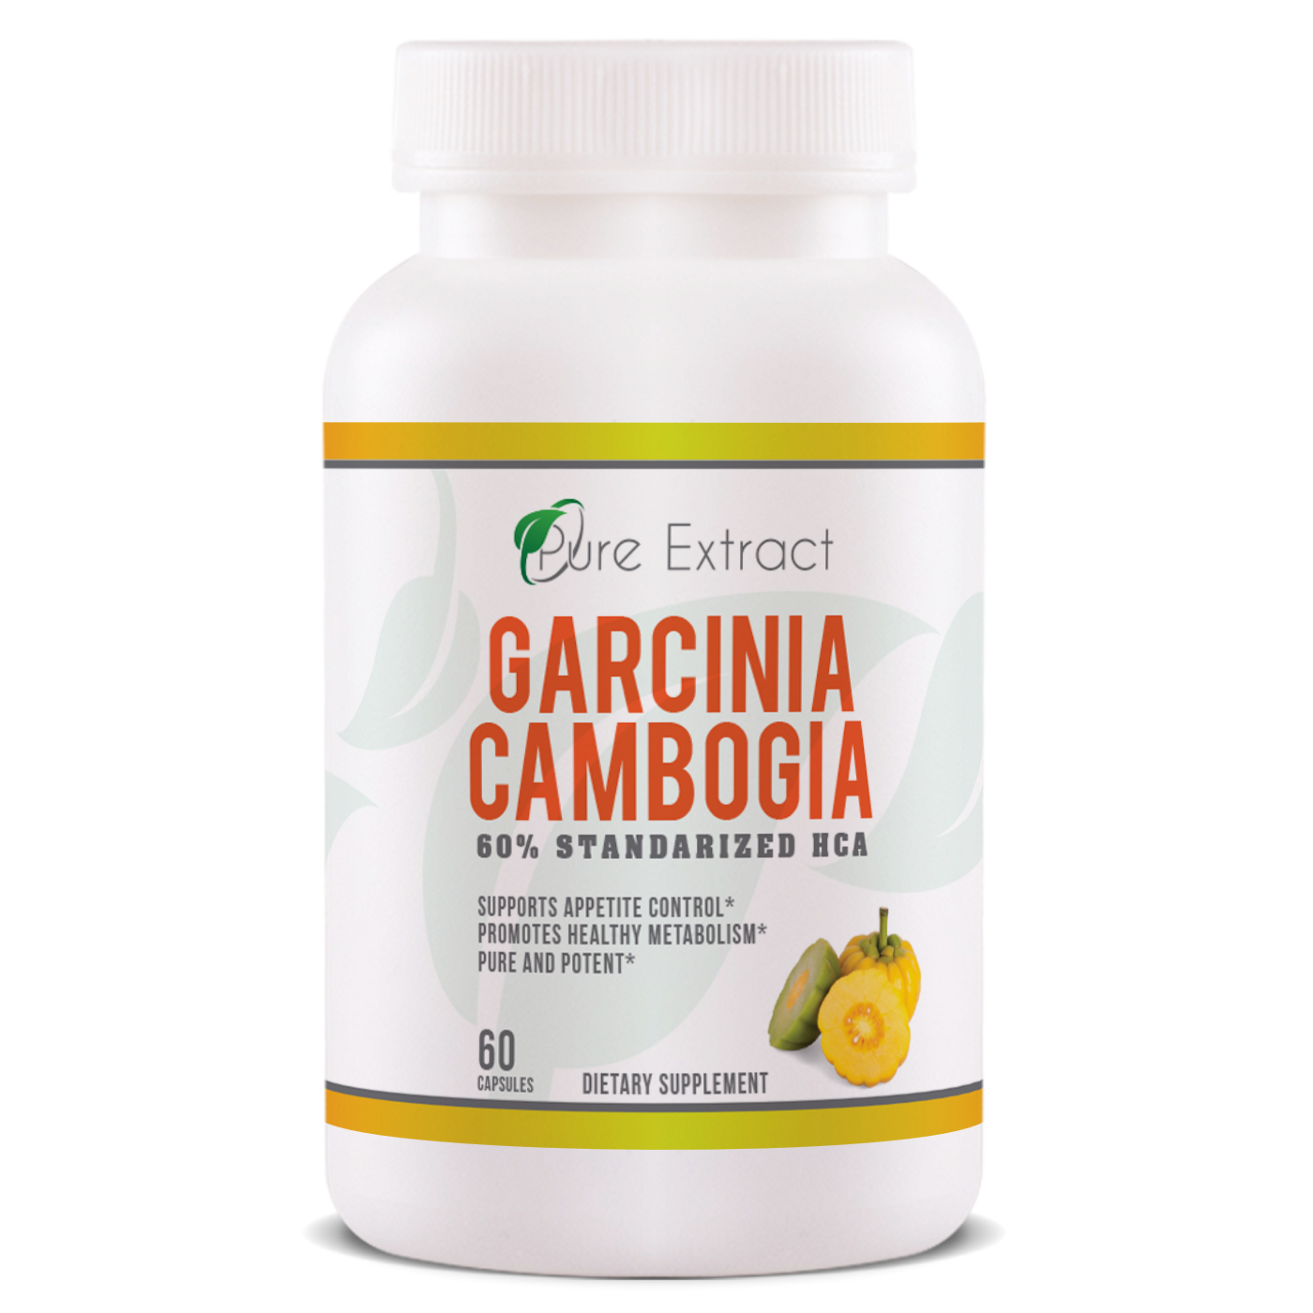 Pure Extract Garcinia Get Well Shape Body Pure Extract Garcinia